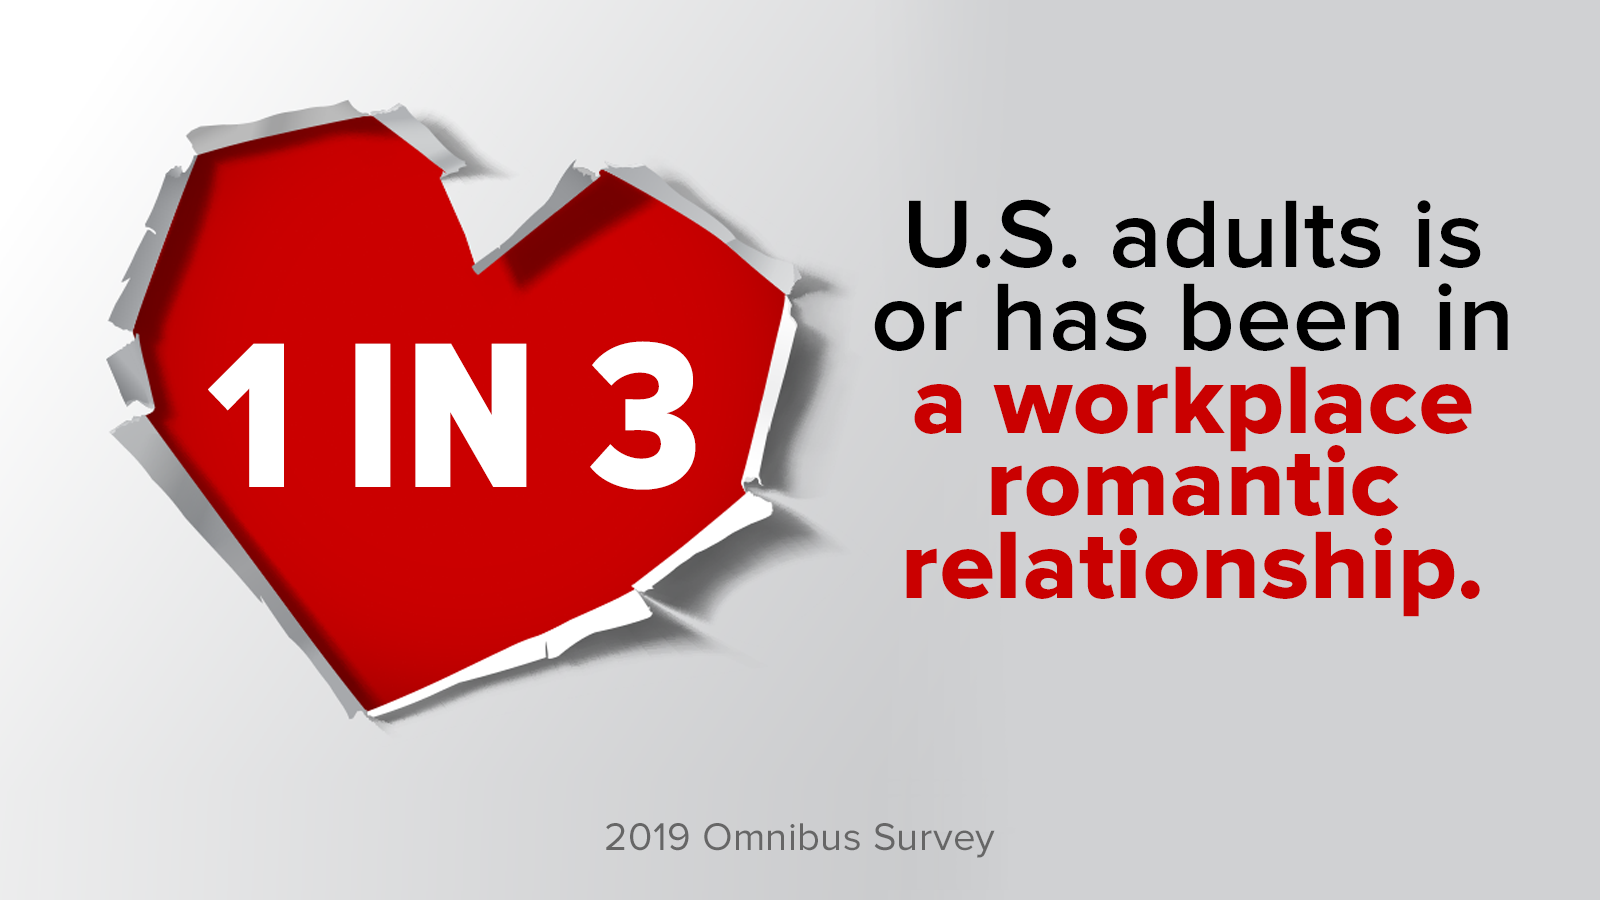 1 in 3 SHRM_WorkplaceRomance graphic.png